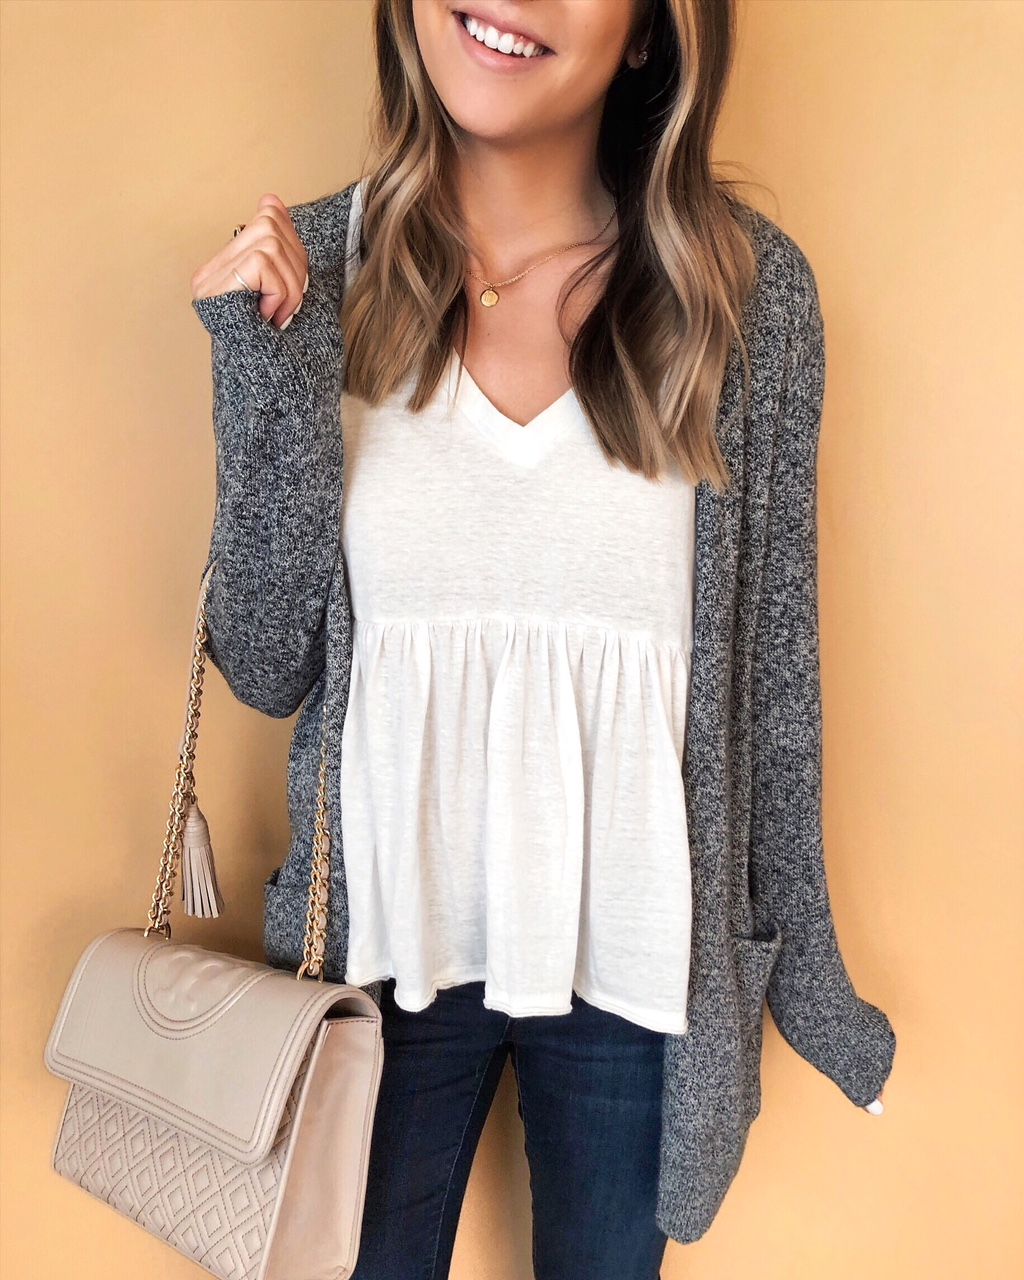 Pre-fall finds under $100, old navy cardigan, affordable fashion bloggers